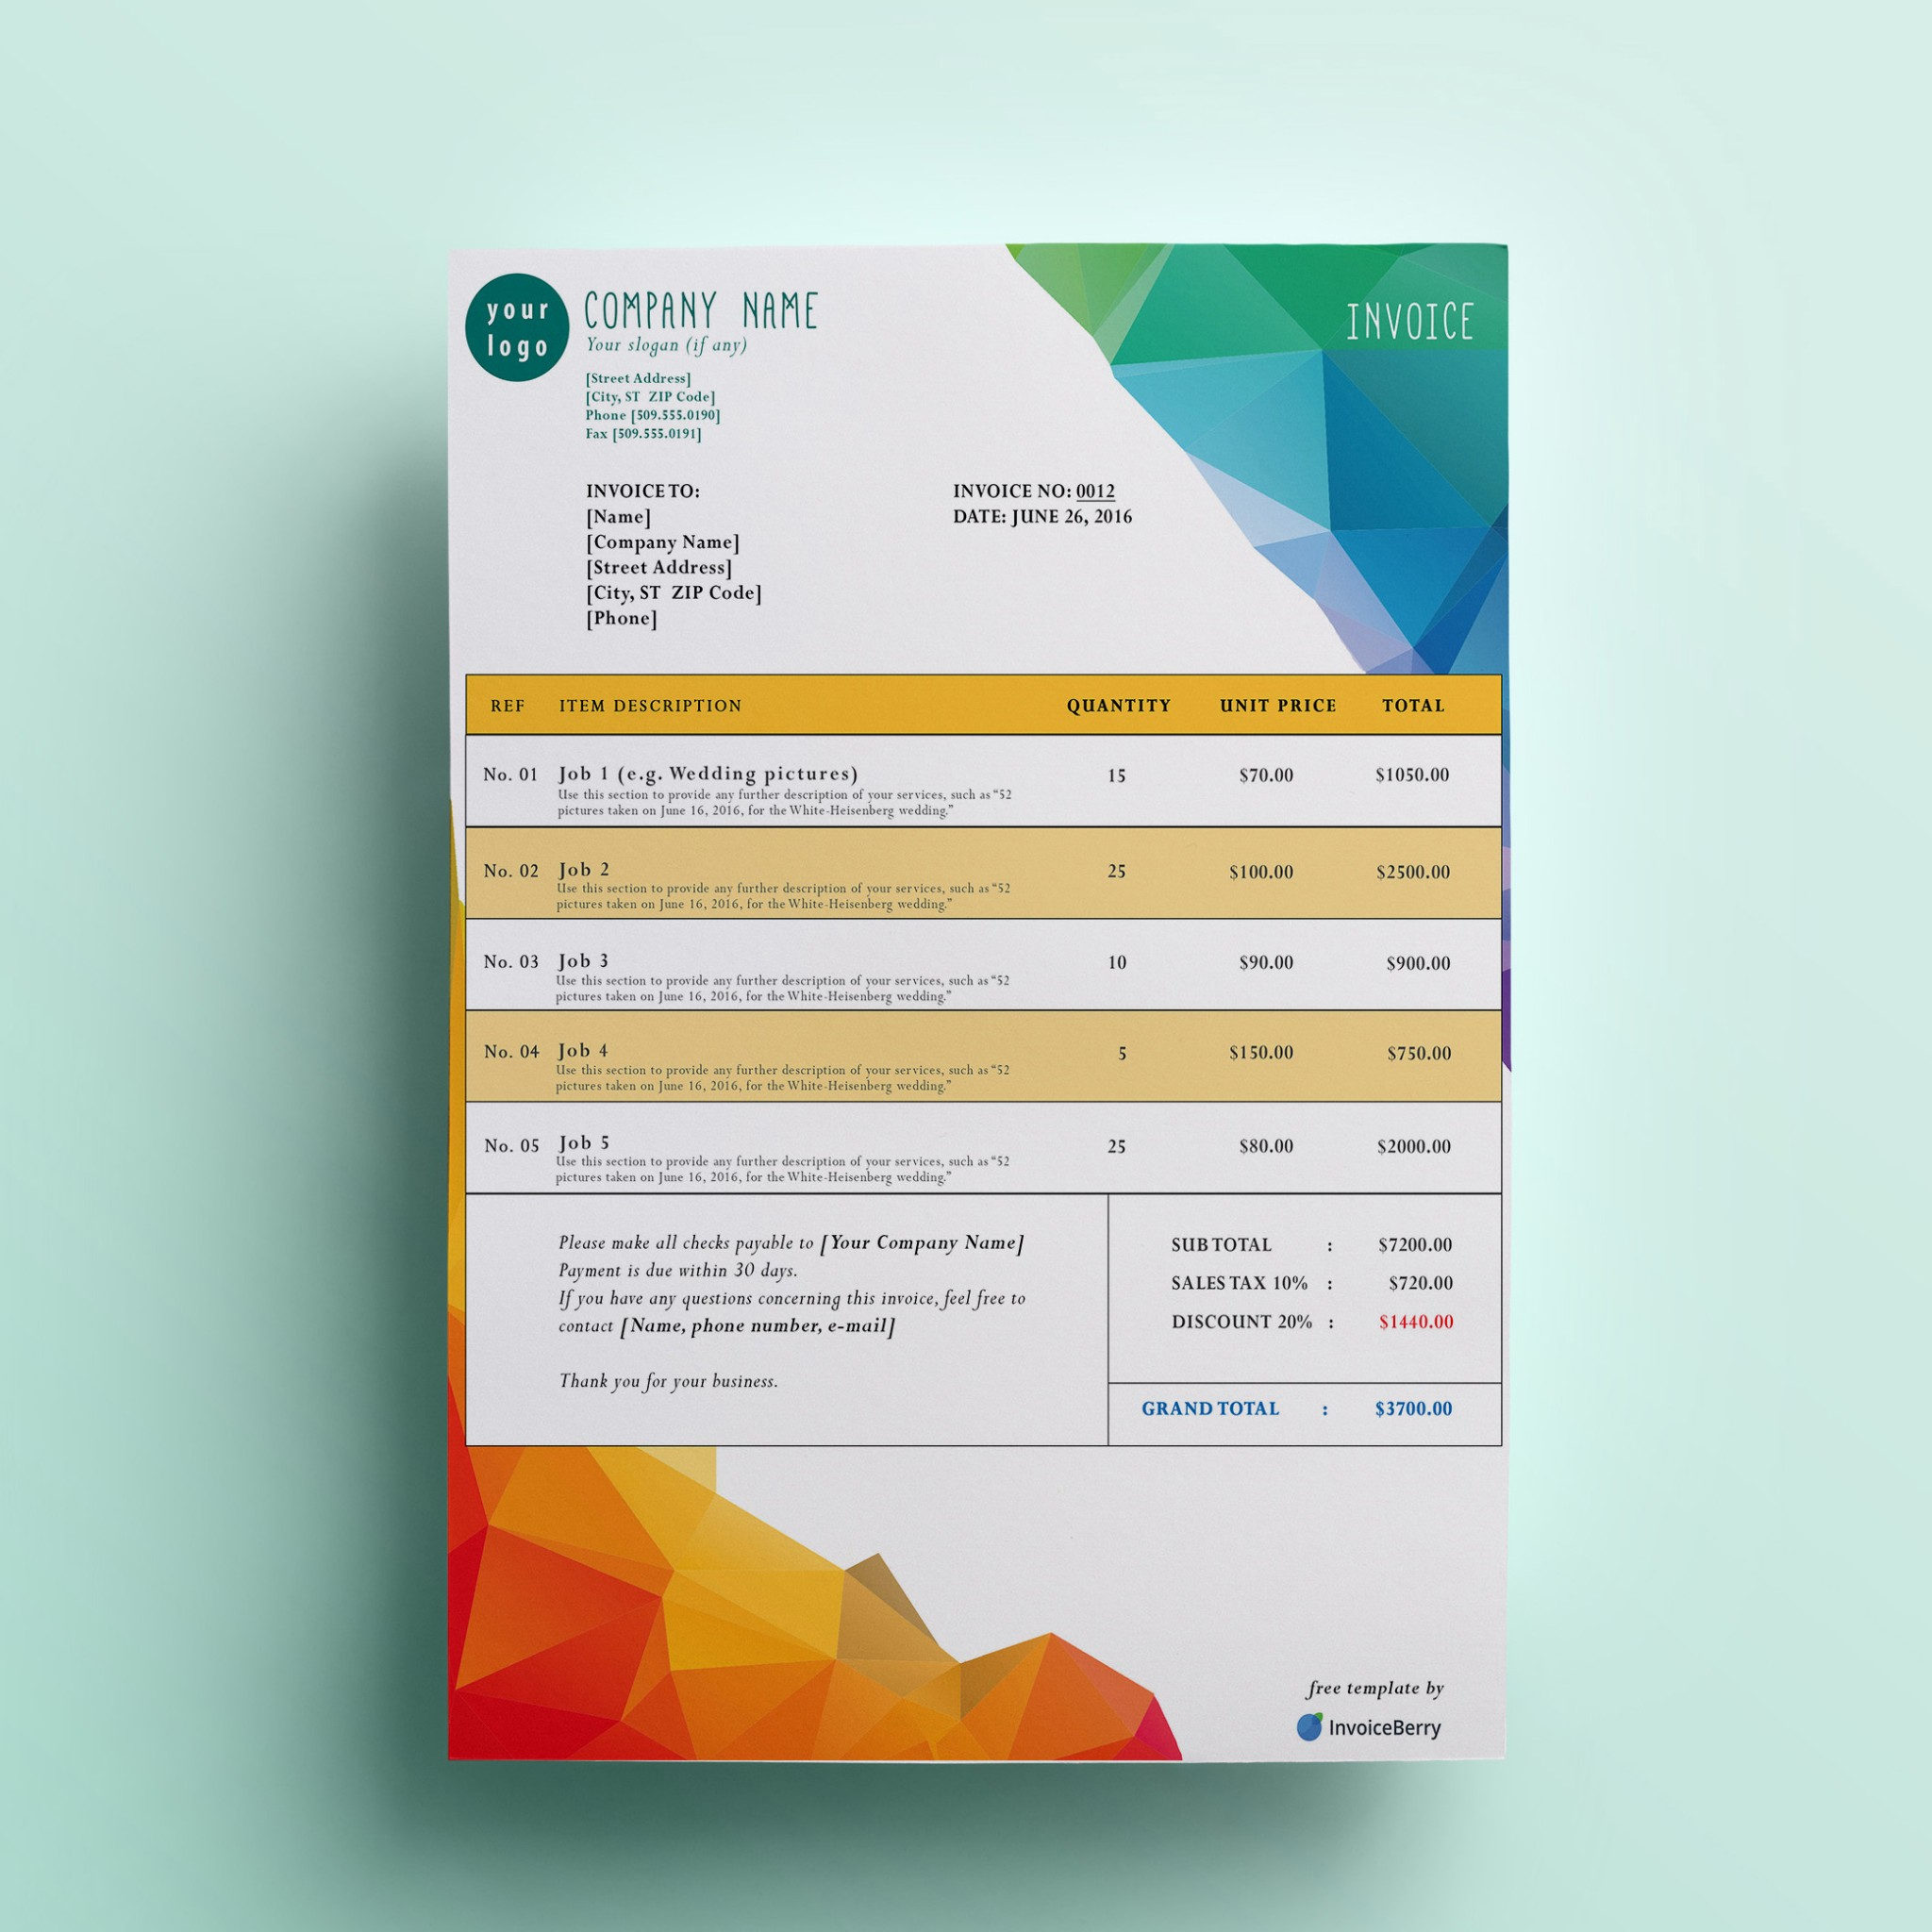 Free Invoice Templates By InvoiceBerry The Grid System - Free invoice templates